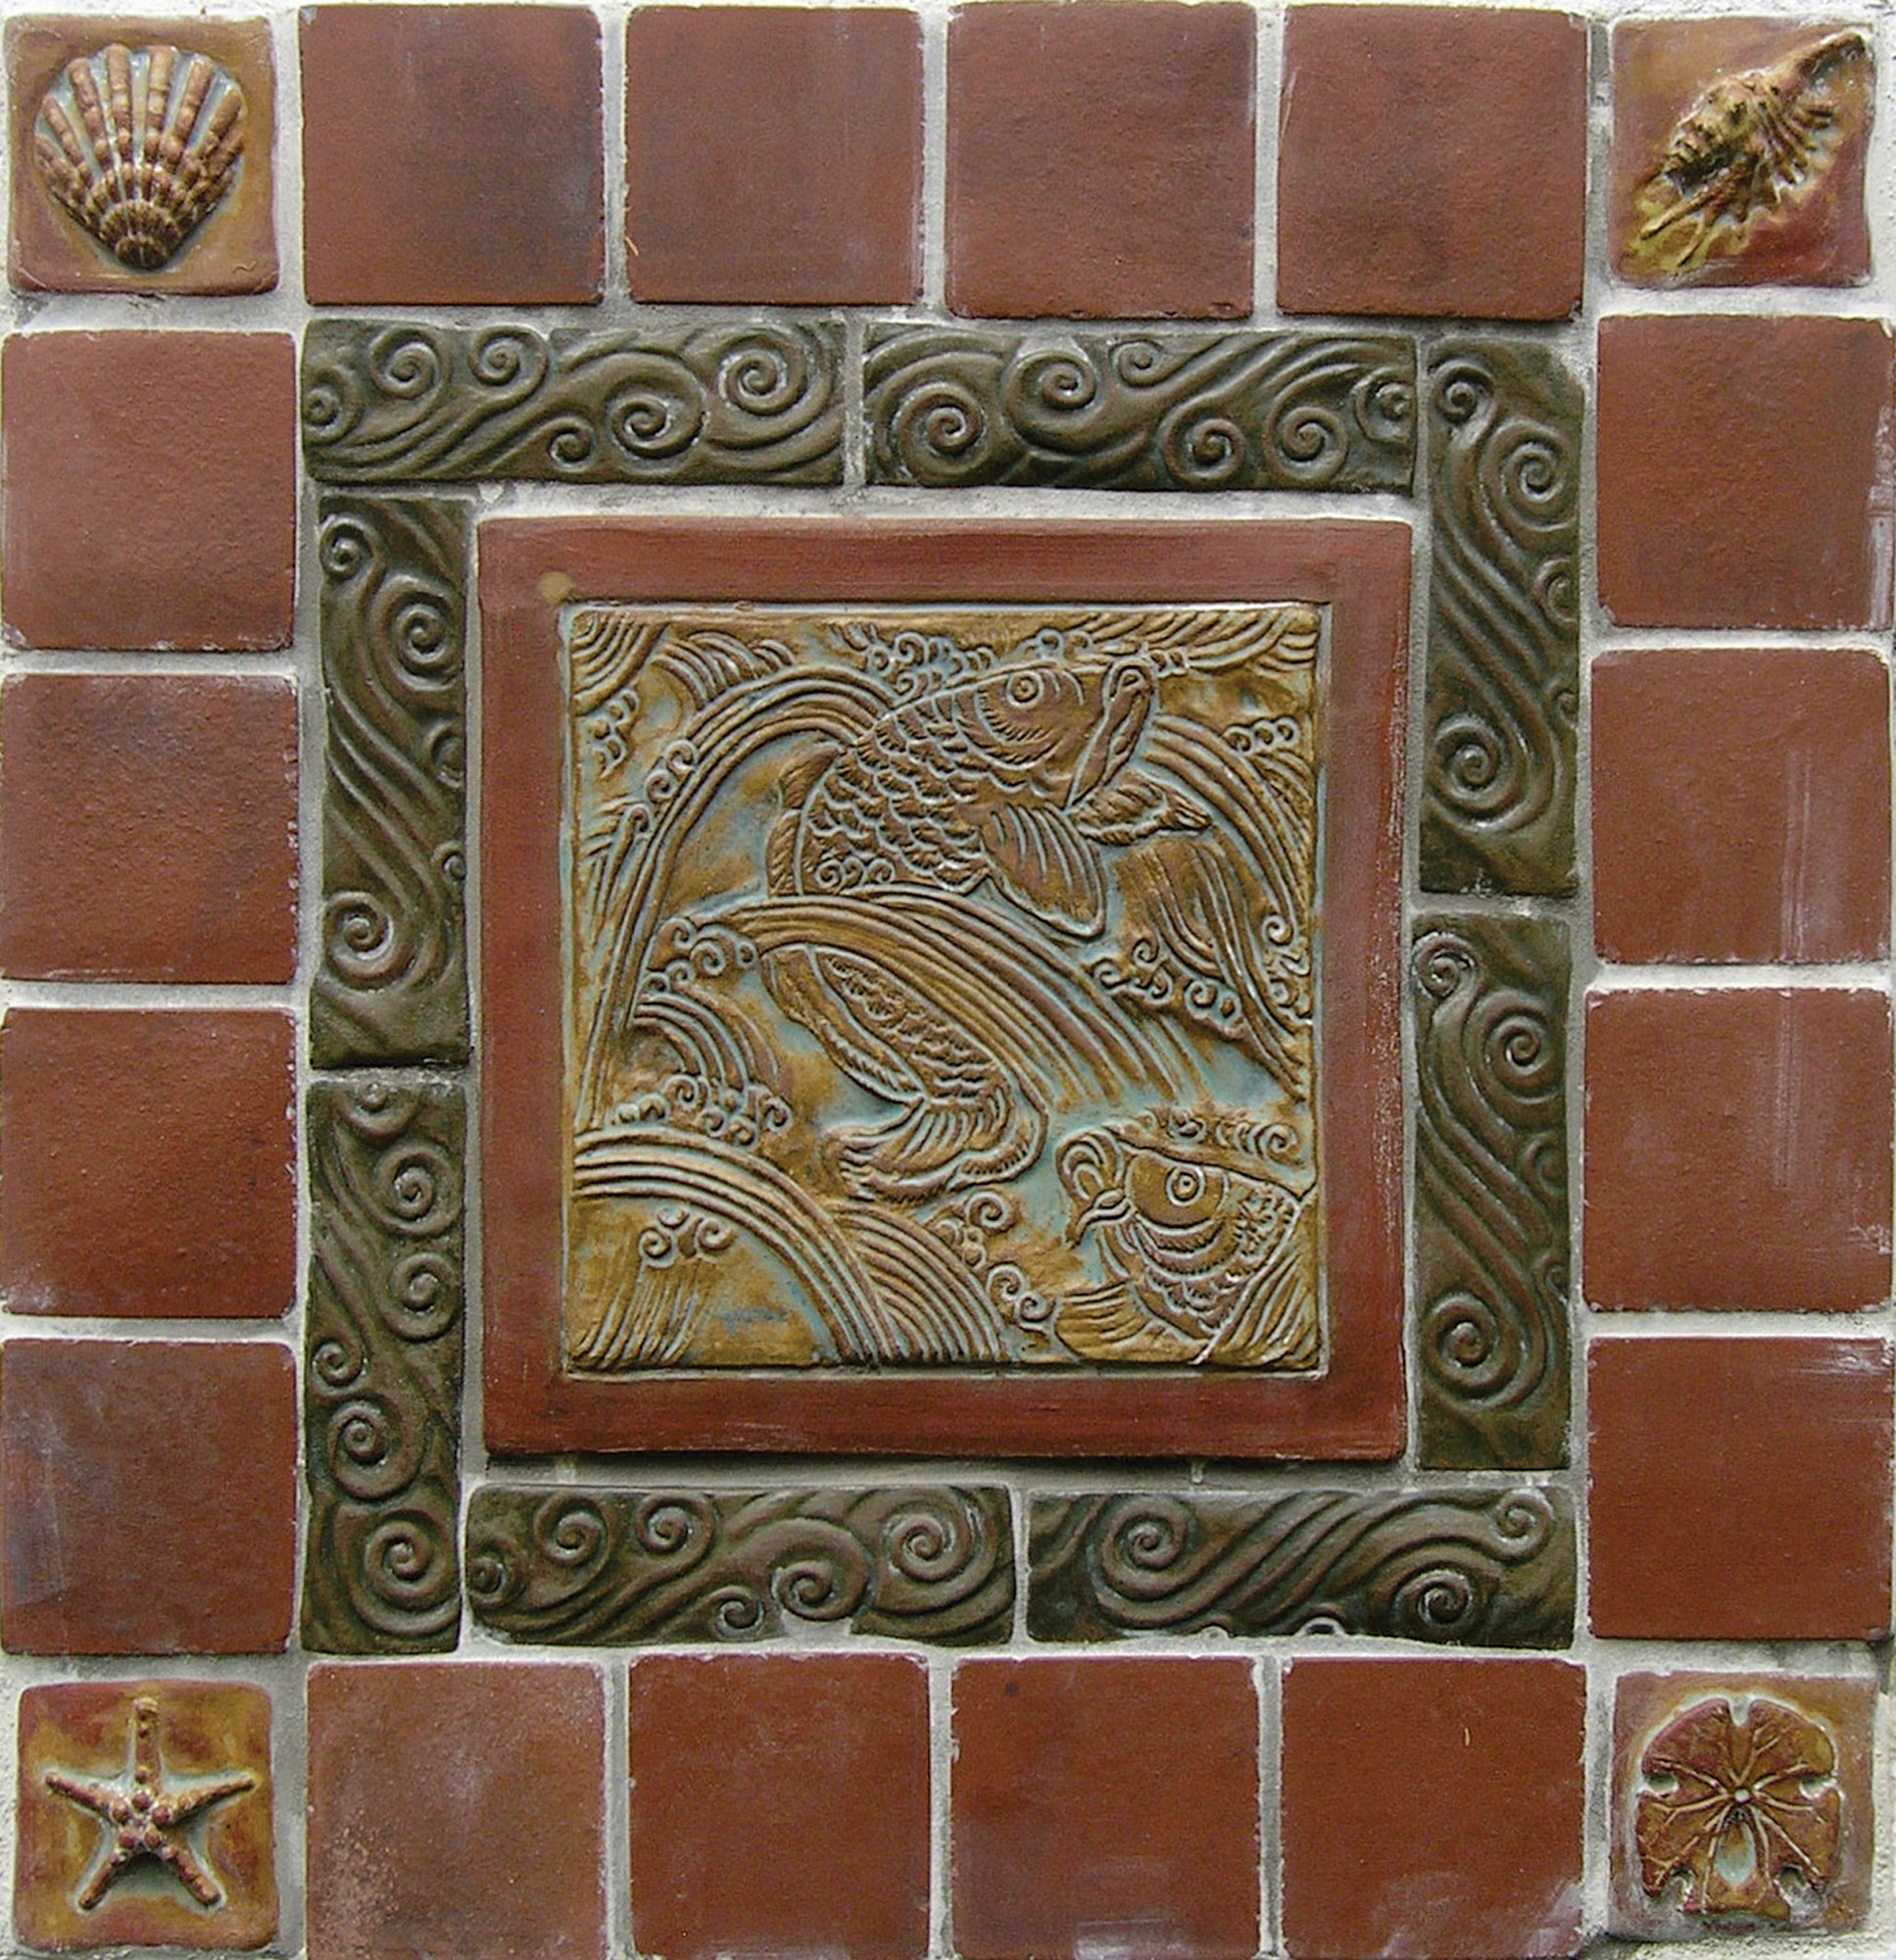 field tiles and multiple relief decos